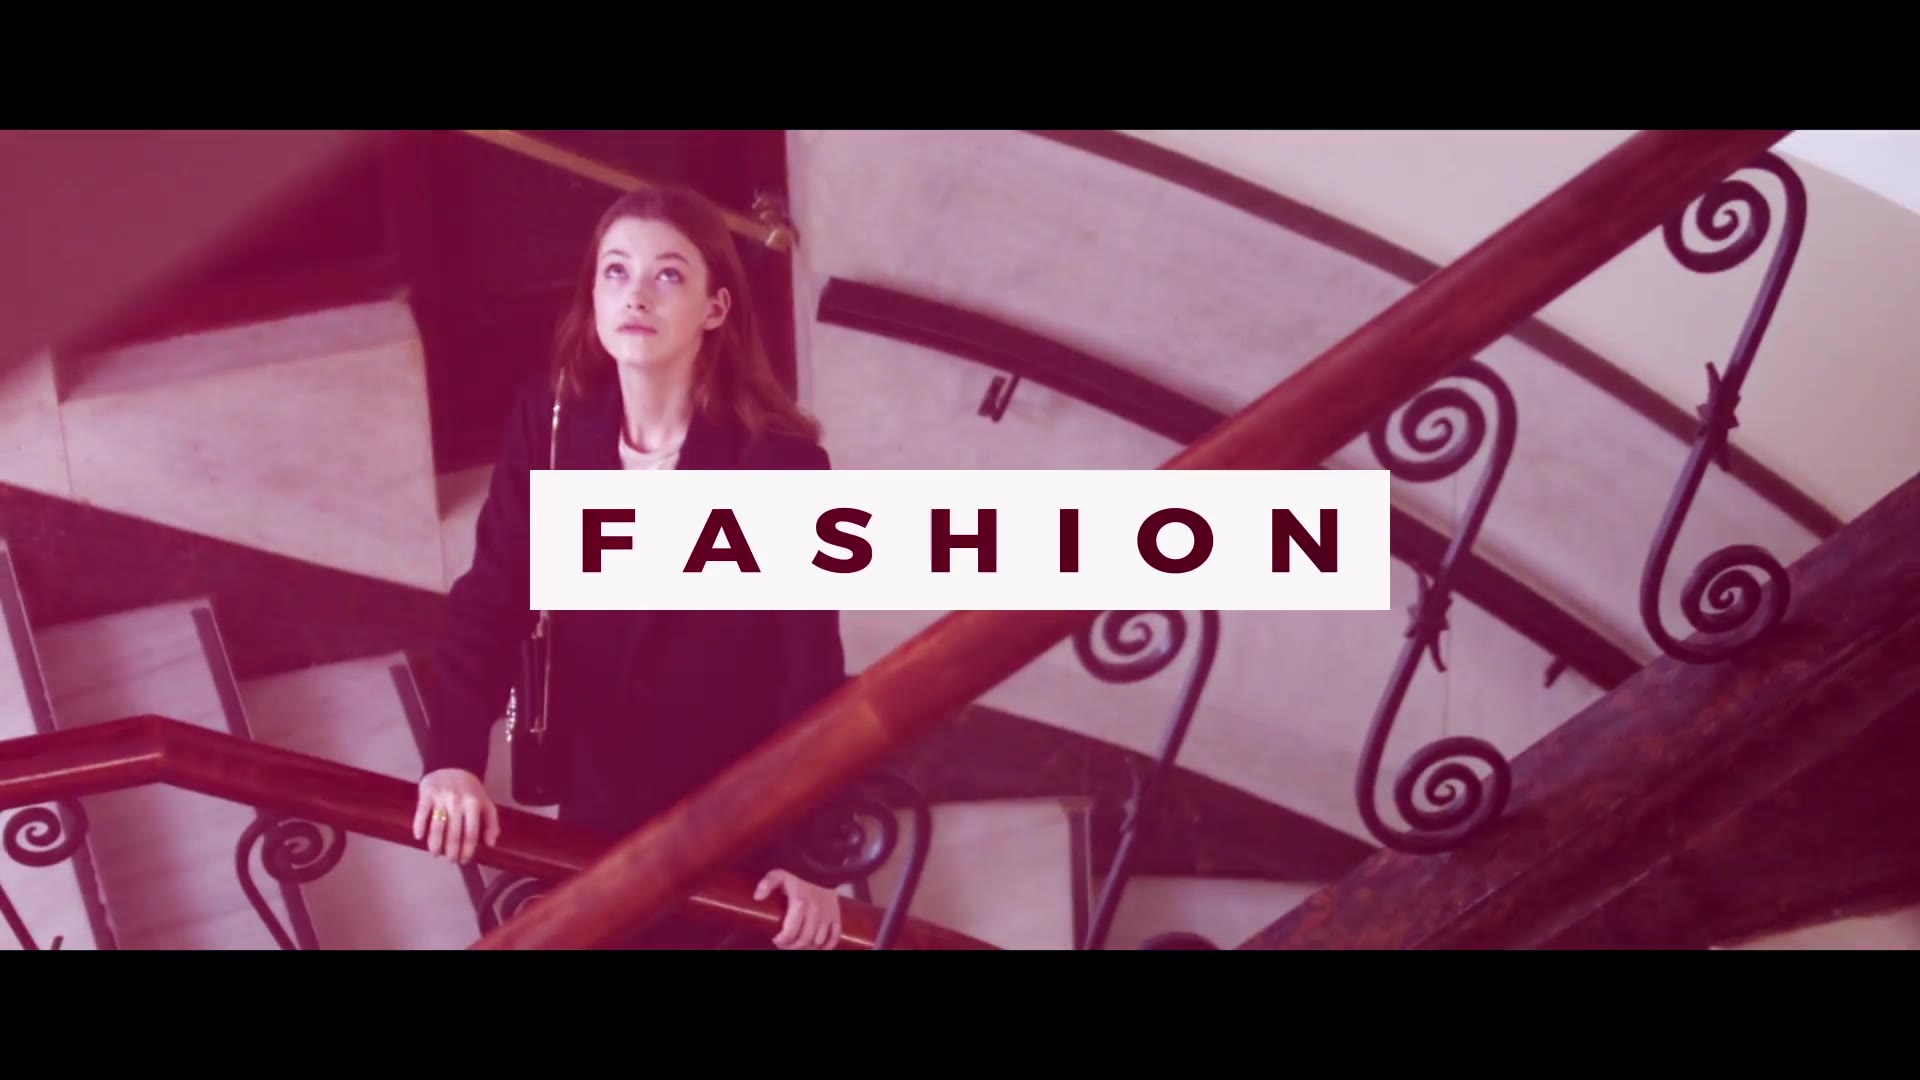 Fashion Intro - Download Videohive 21430581